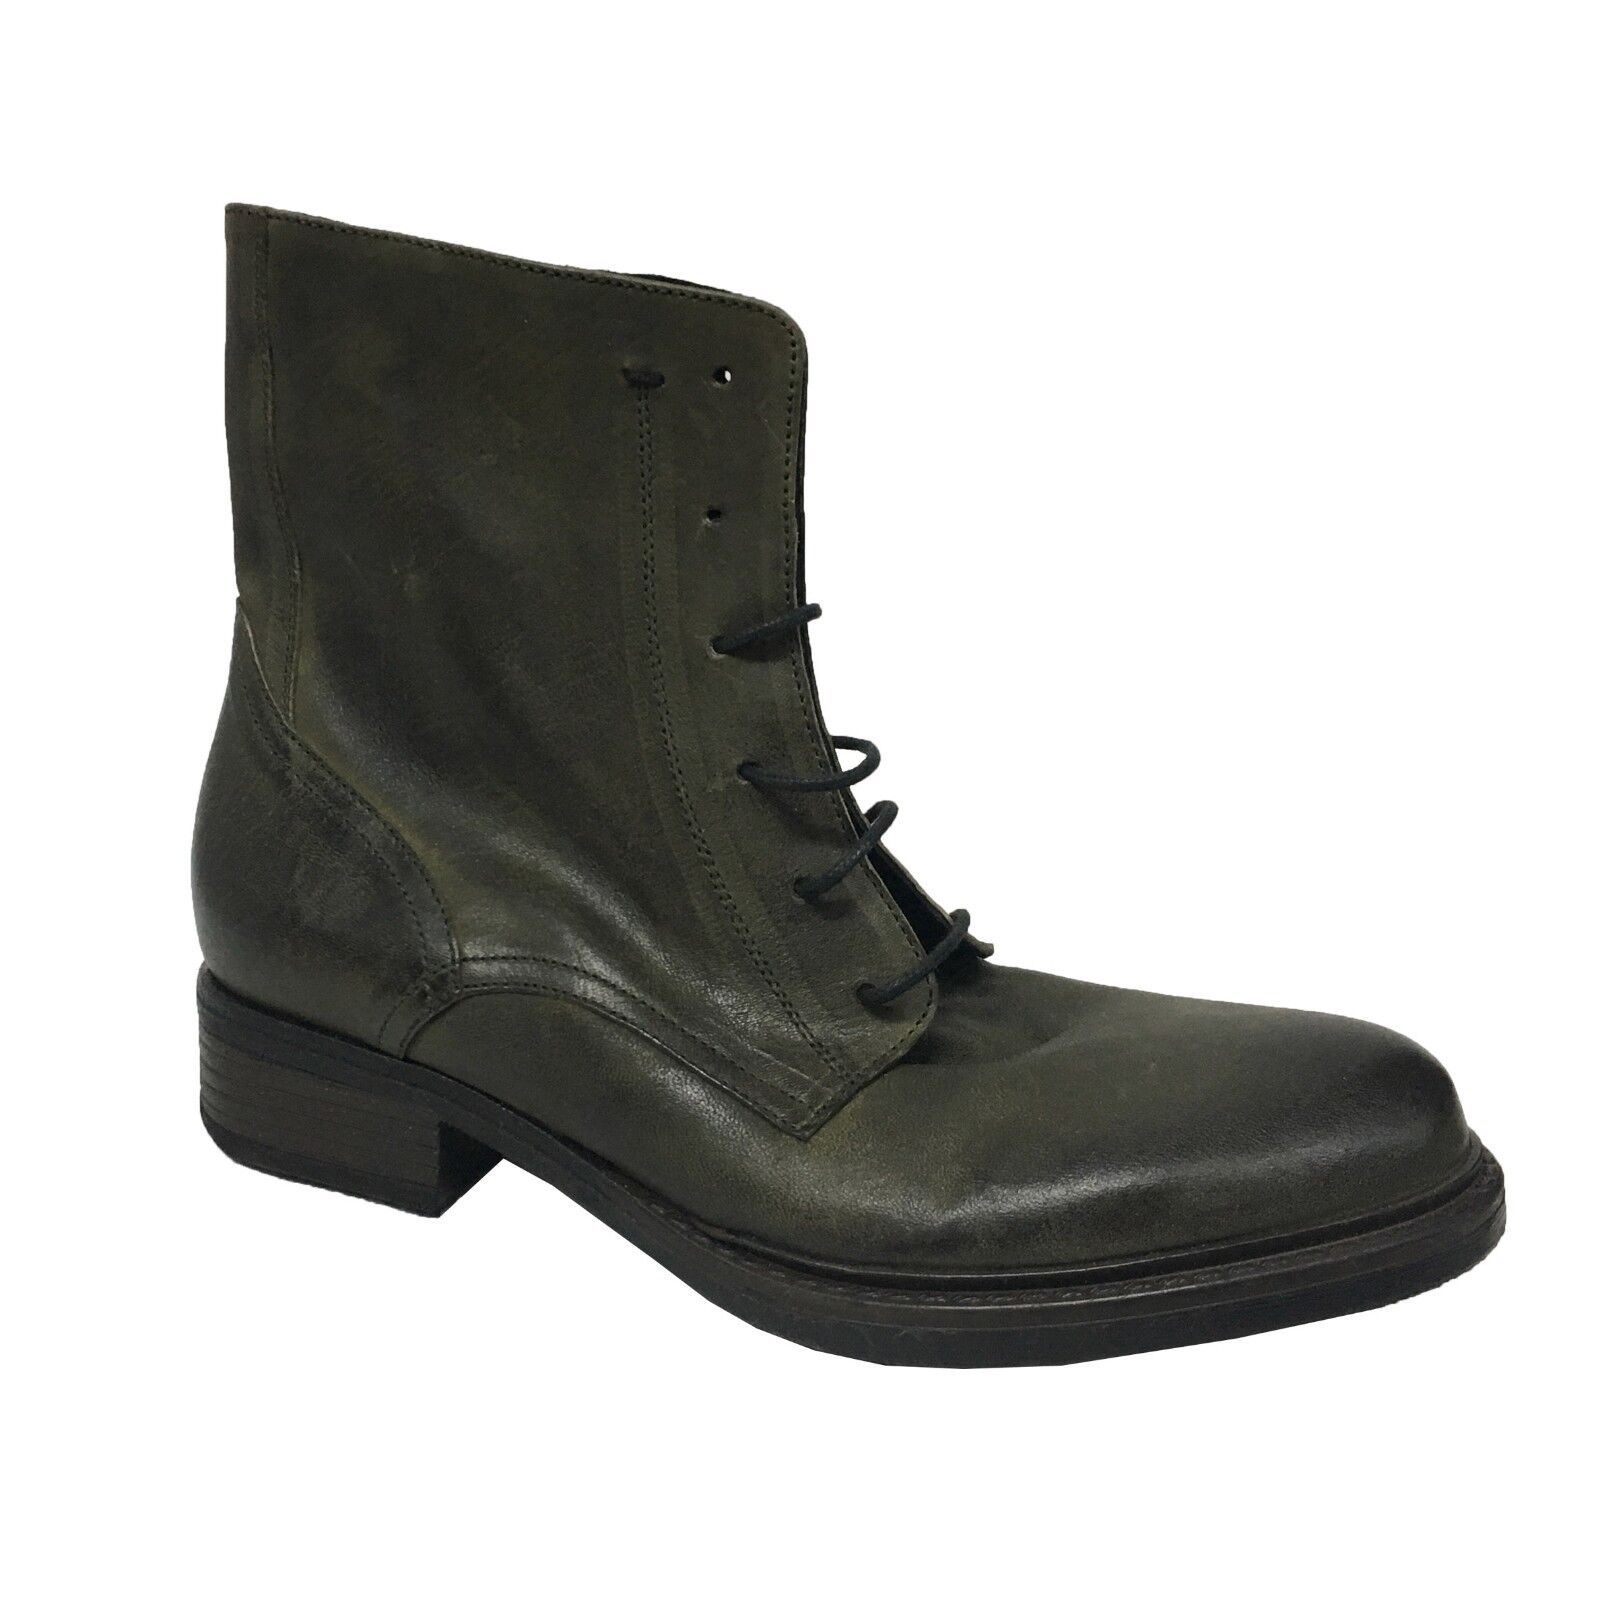 WHY NOT stivale basso donna con lacci verde VALERIE 100% pelle MADE IN ITALY